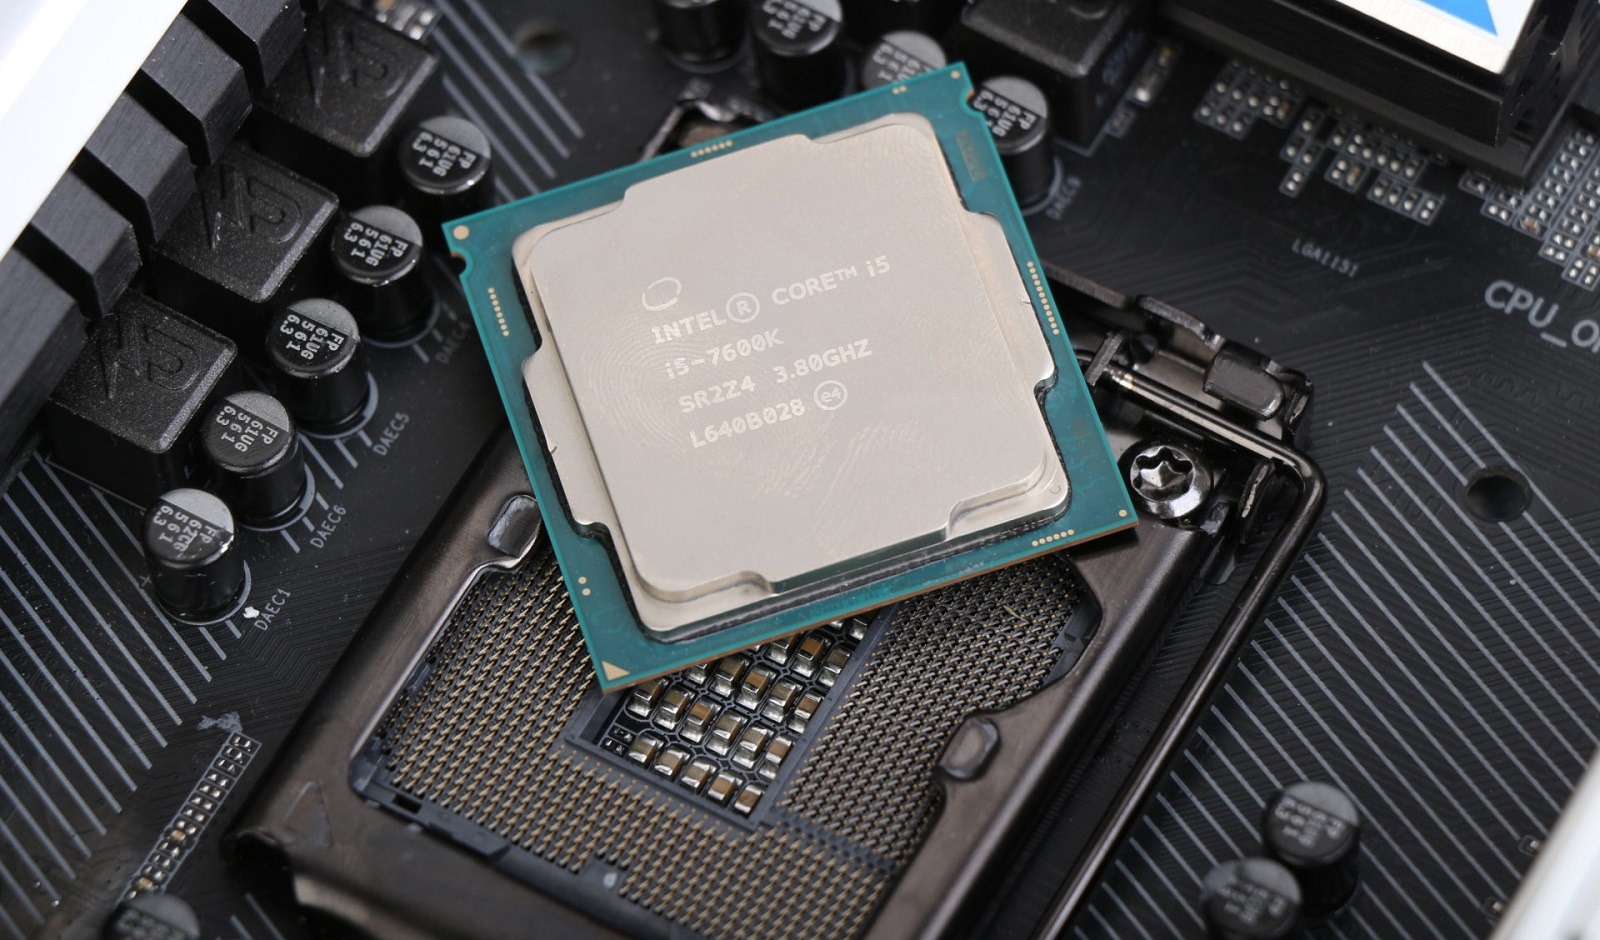 Intel Skylake - 7th Generation